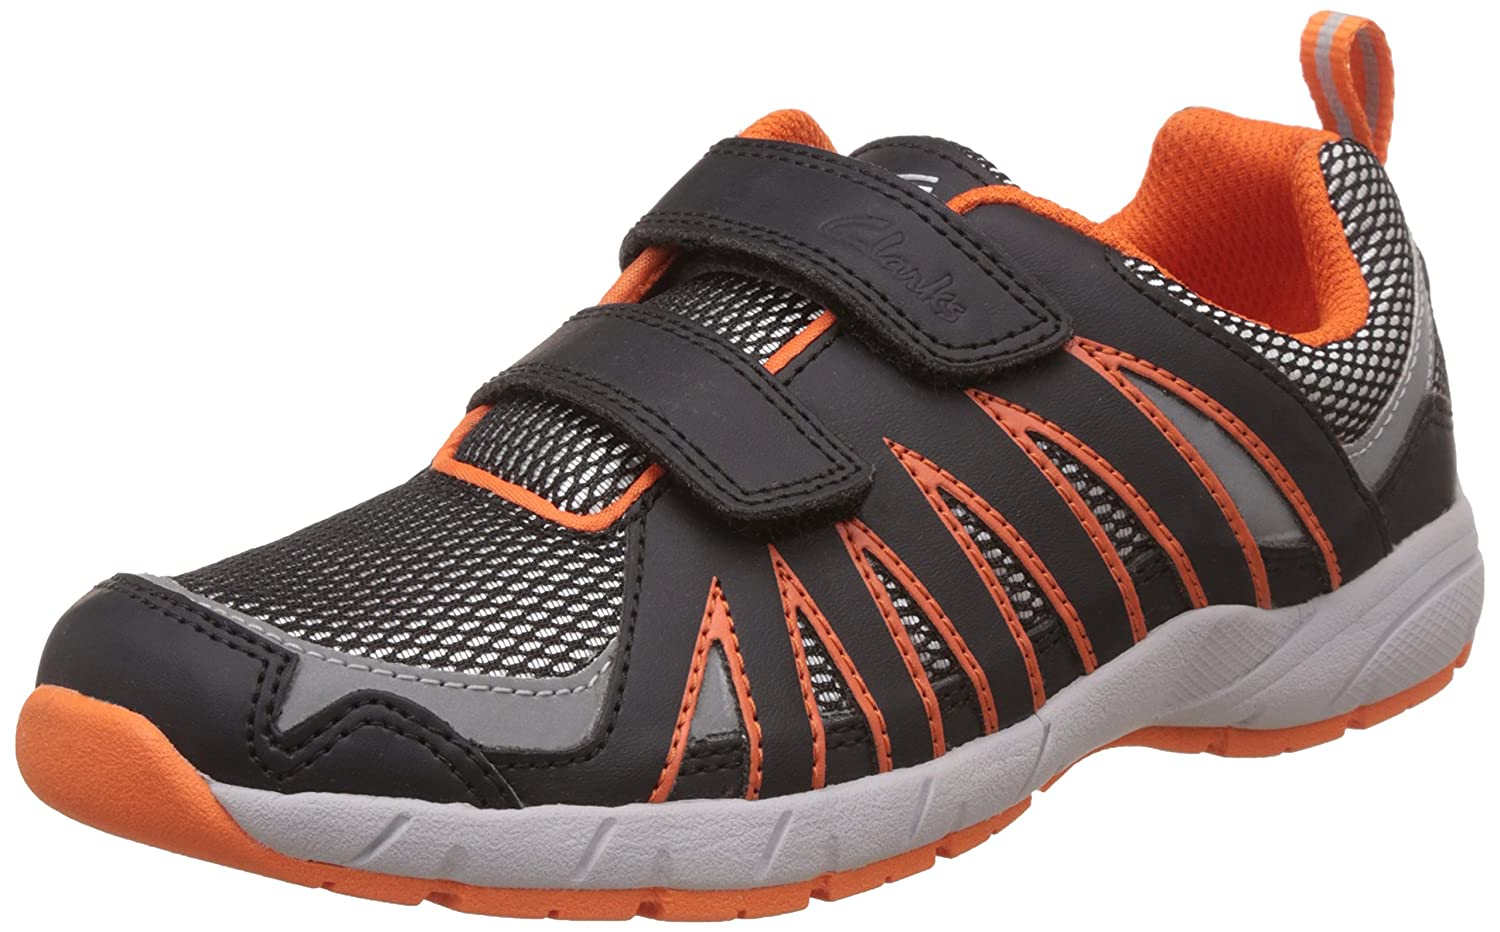 9b06cfd7031a Clarks Baby Boys Cross Hype Jnr 1-4 Years Indian Shoes  Buy Online at Low  Prices in India - Amazon.in